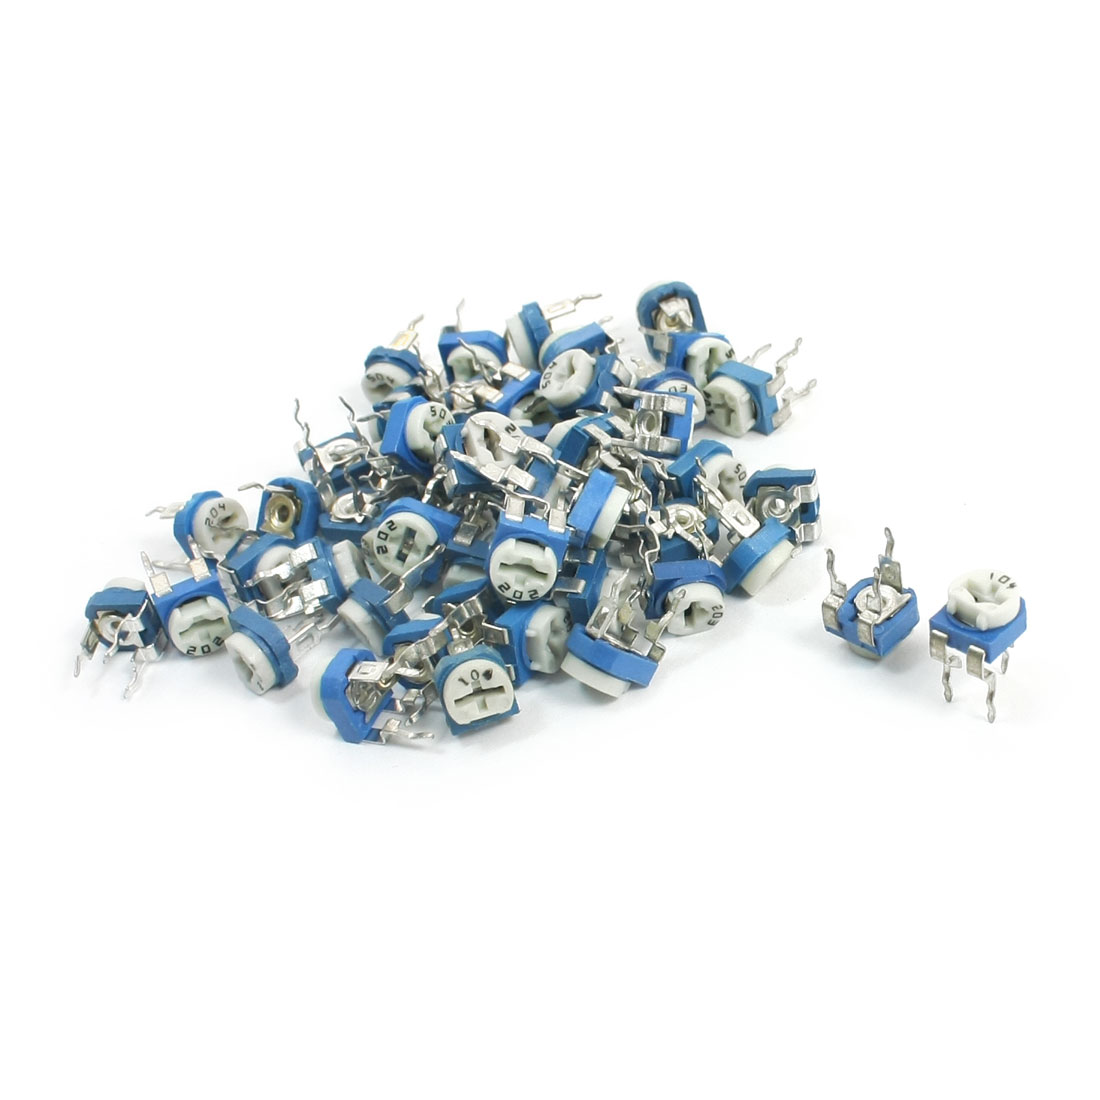 55Pcs Blue White Horizontal Trimmer Resistor Potentiometers 200Ohm-500K Ohm